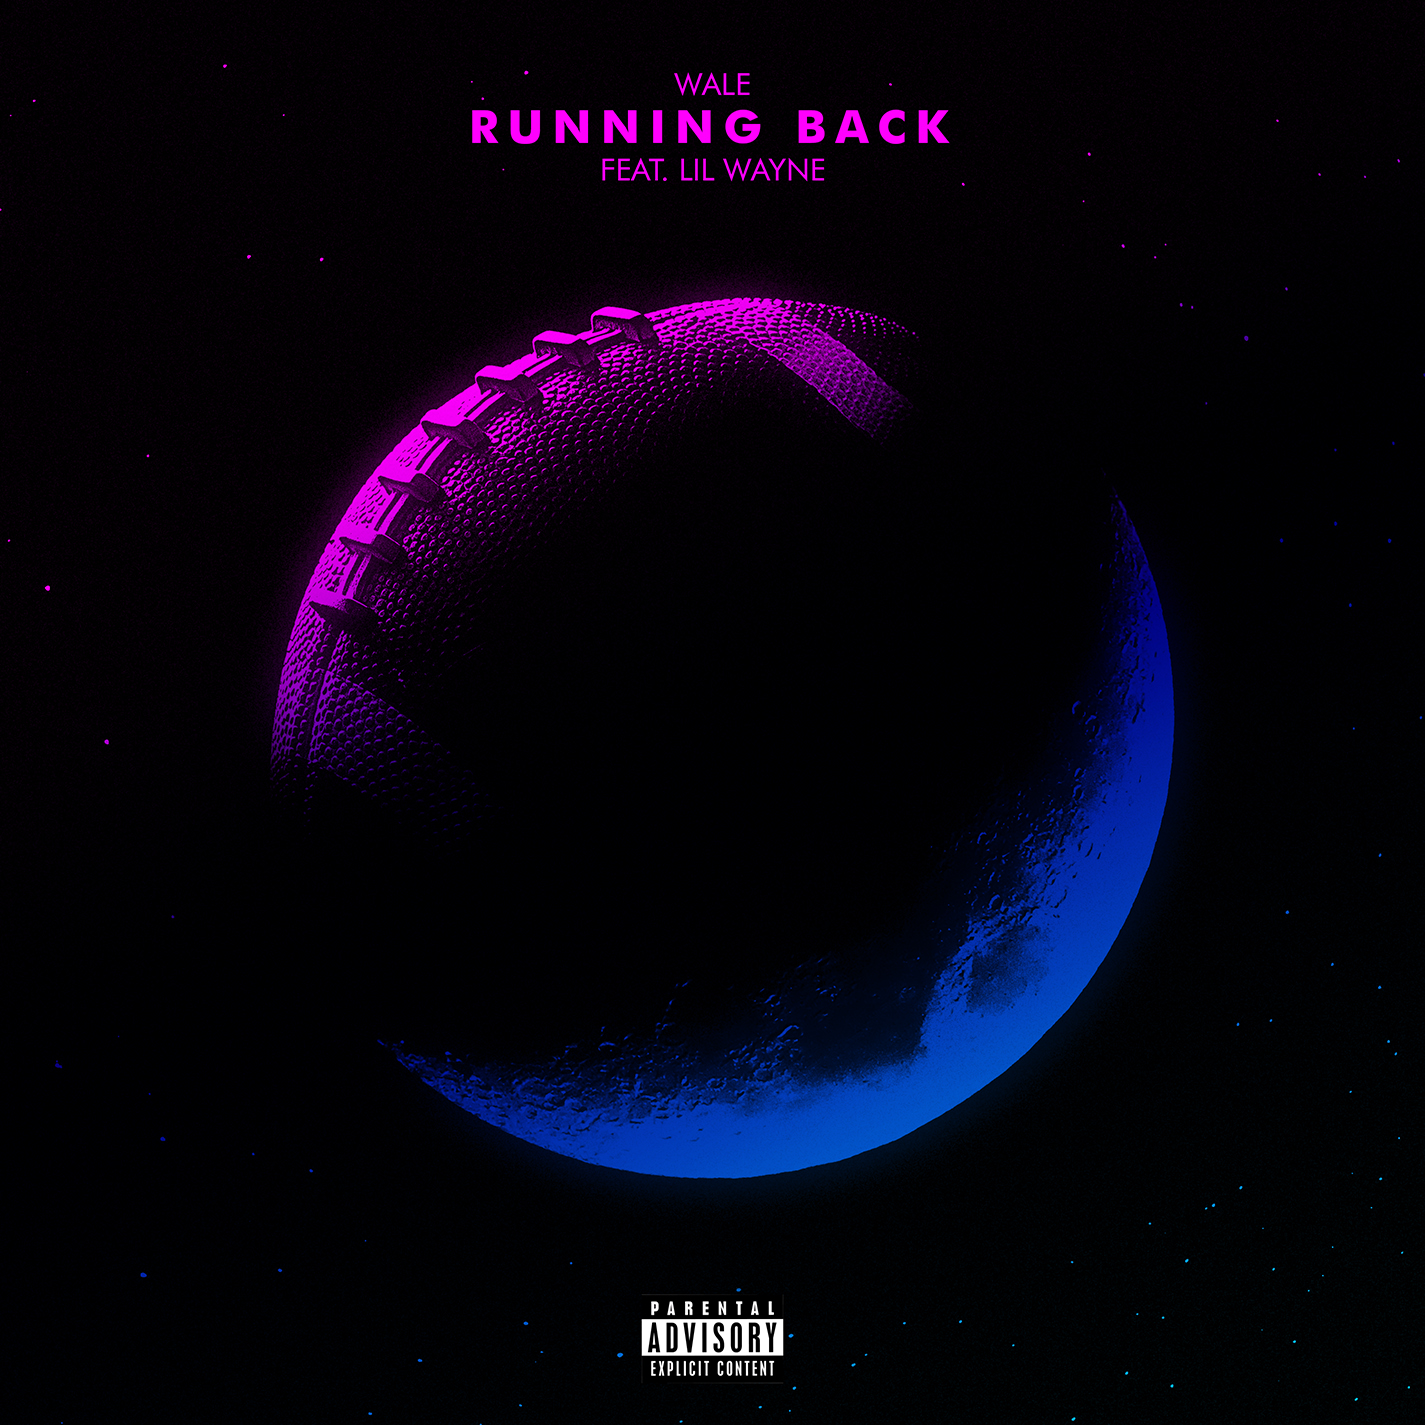 Wale and Lil Wayne - Running Back single art